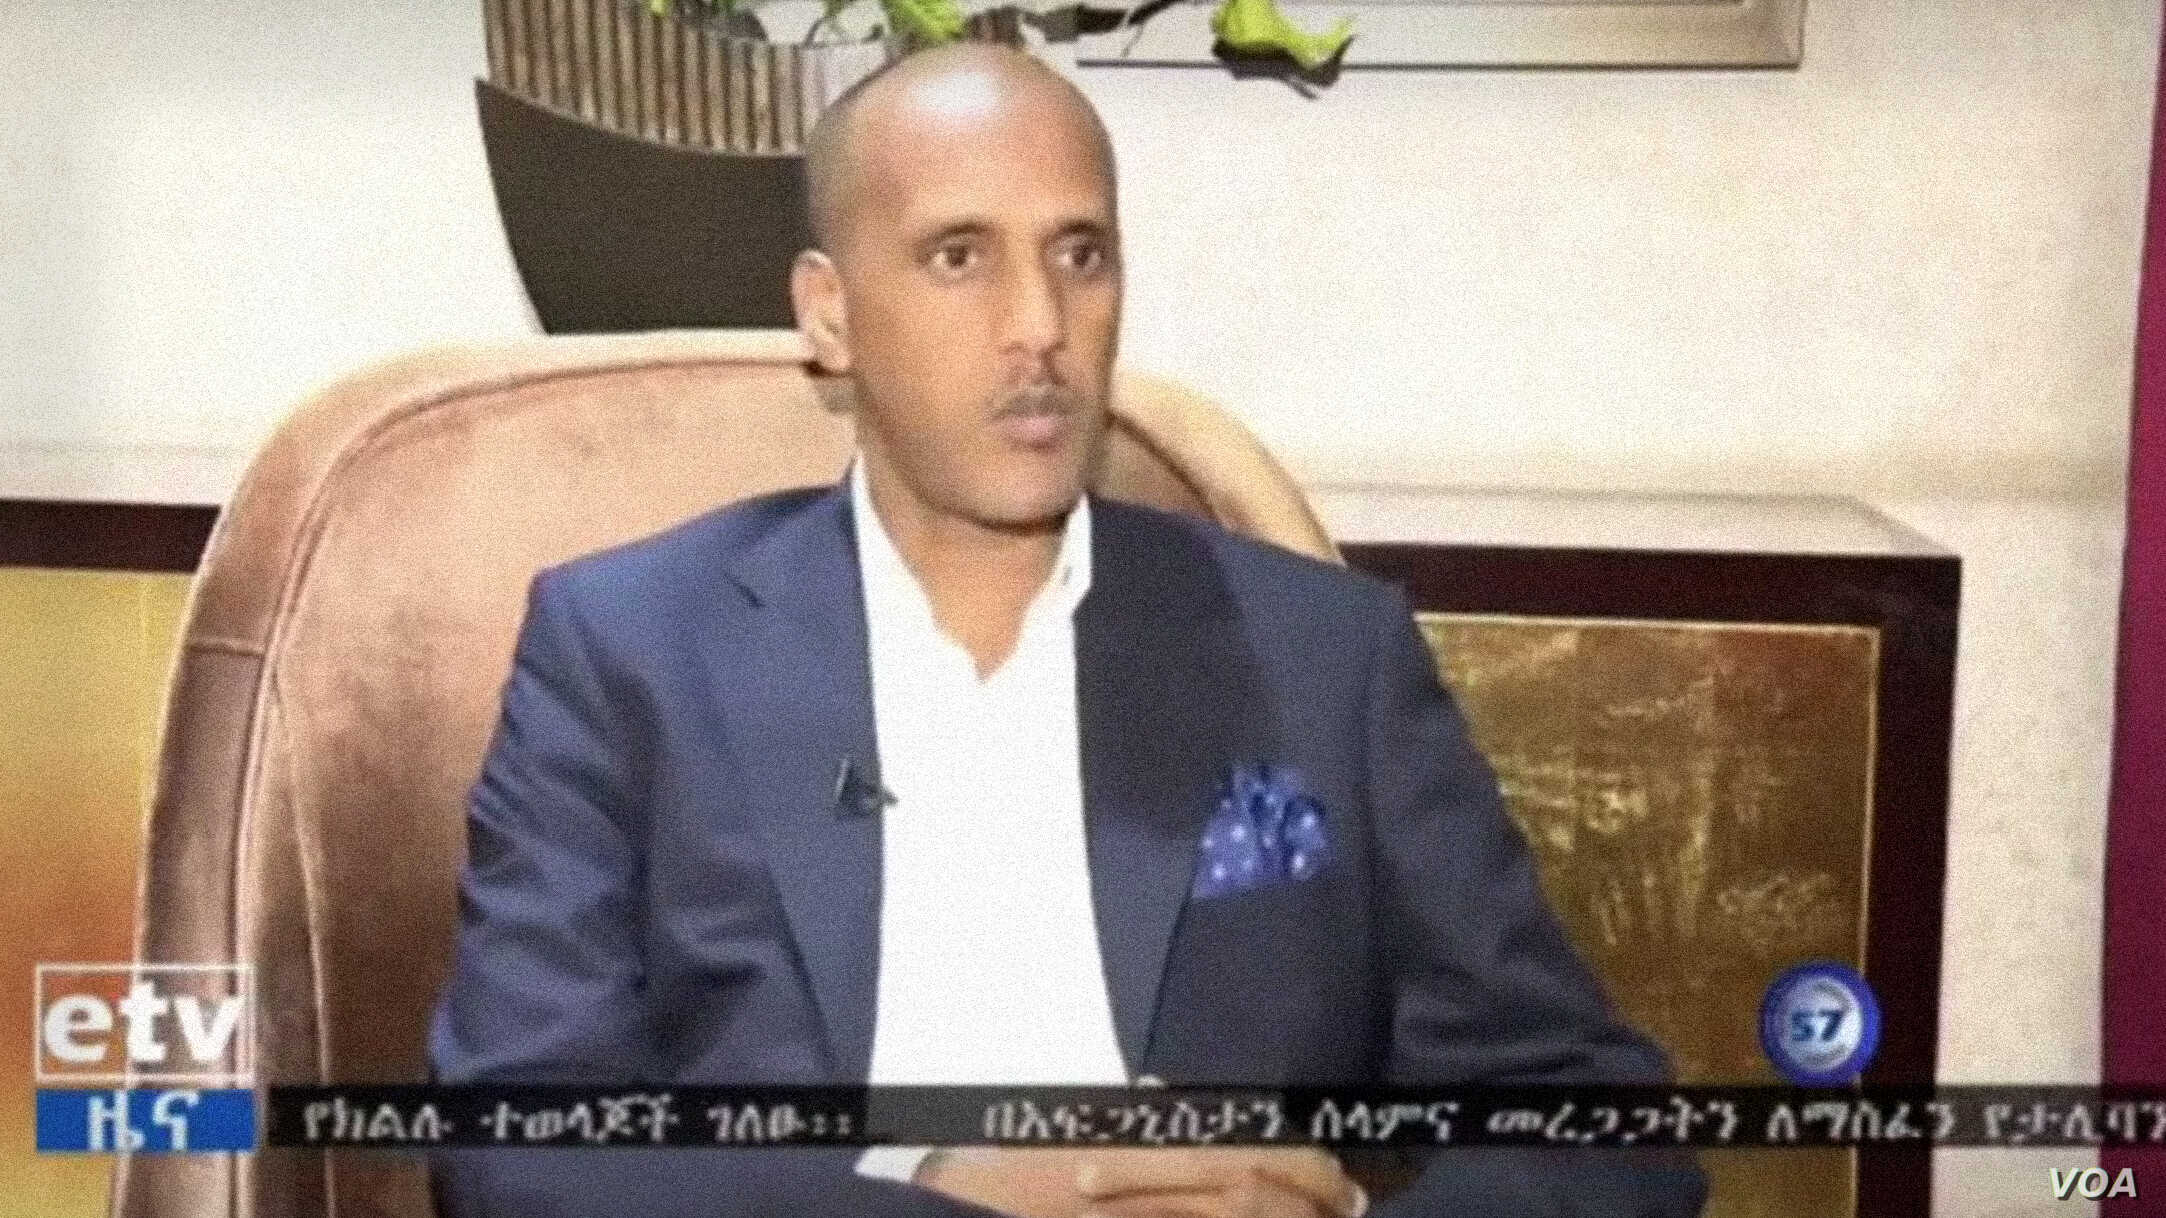 Ethiopia's Somali Region Hopes New Leader Will Bring Peace | Voice